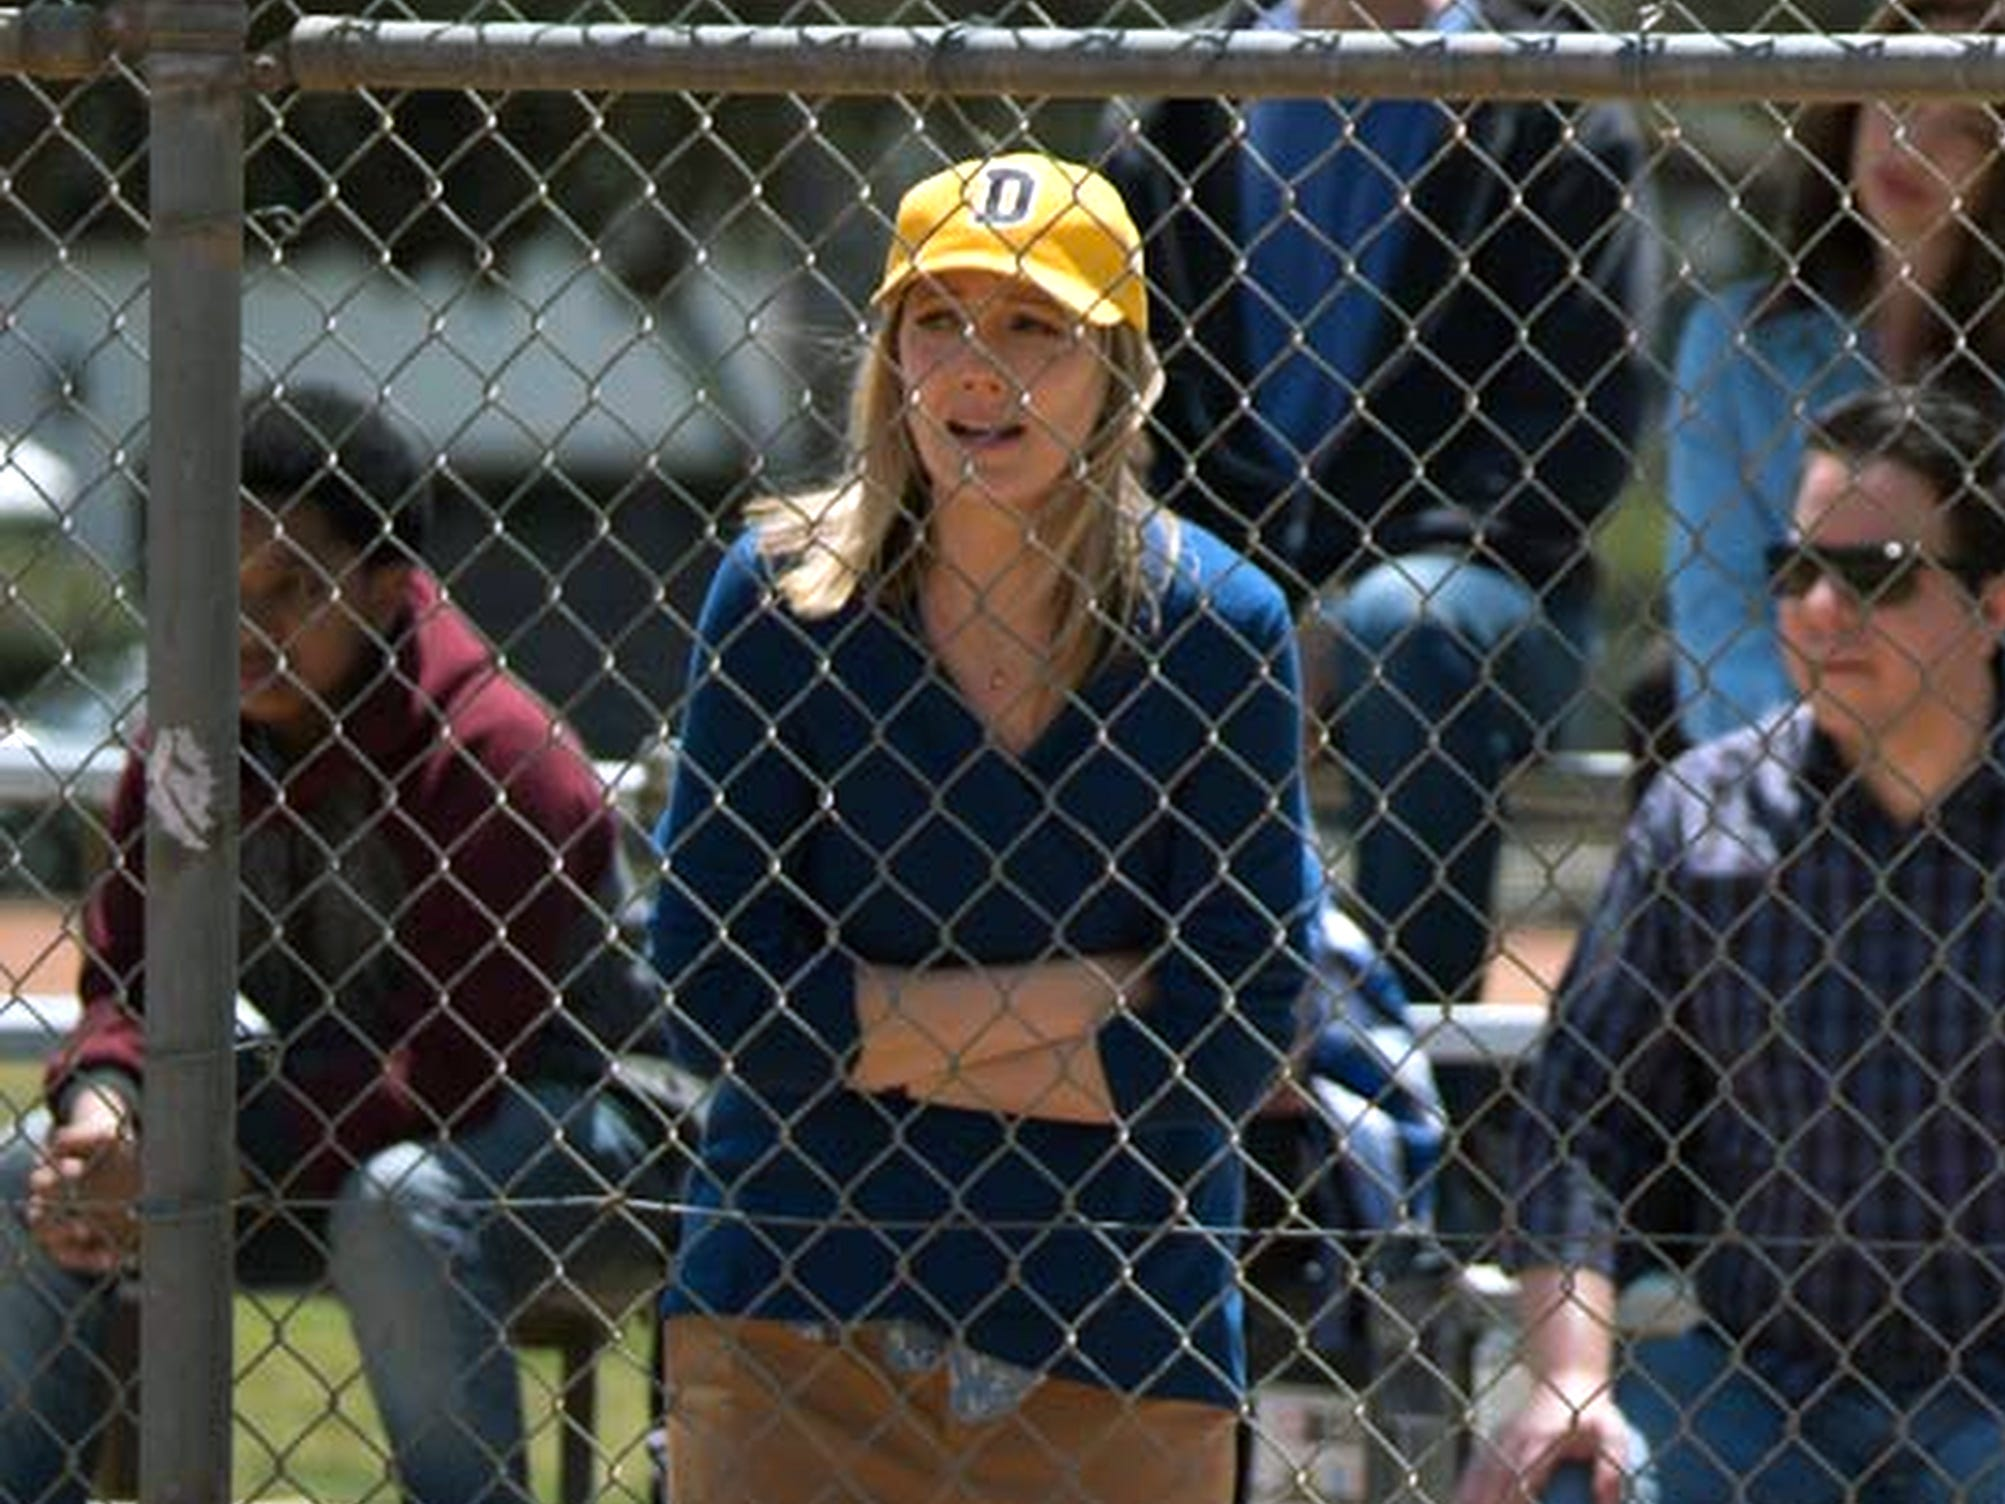 The sadness in Jeff's personal life leads to the break up of his marriage to Jill, played by Judy Greer.